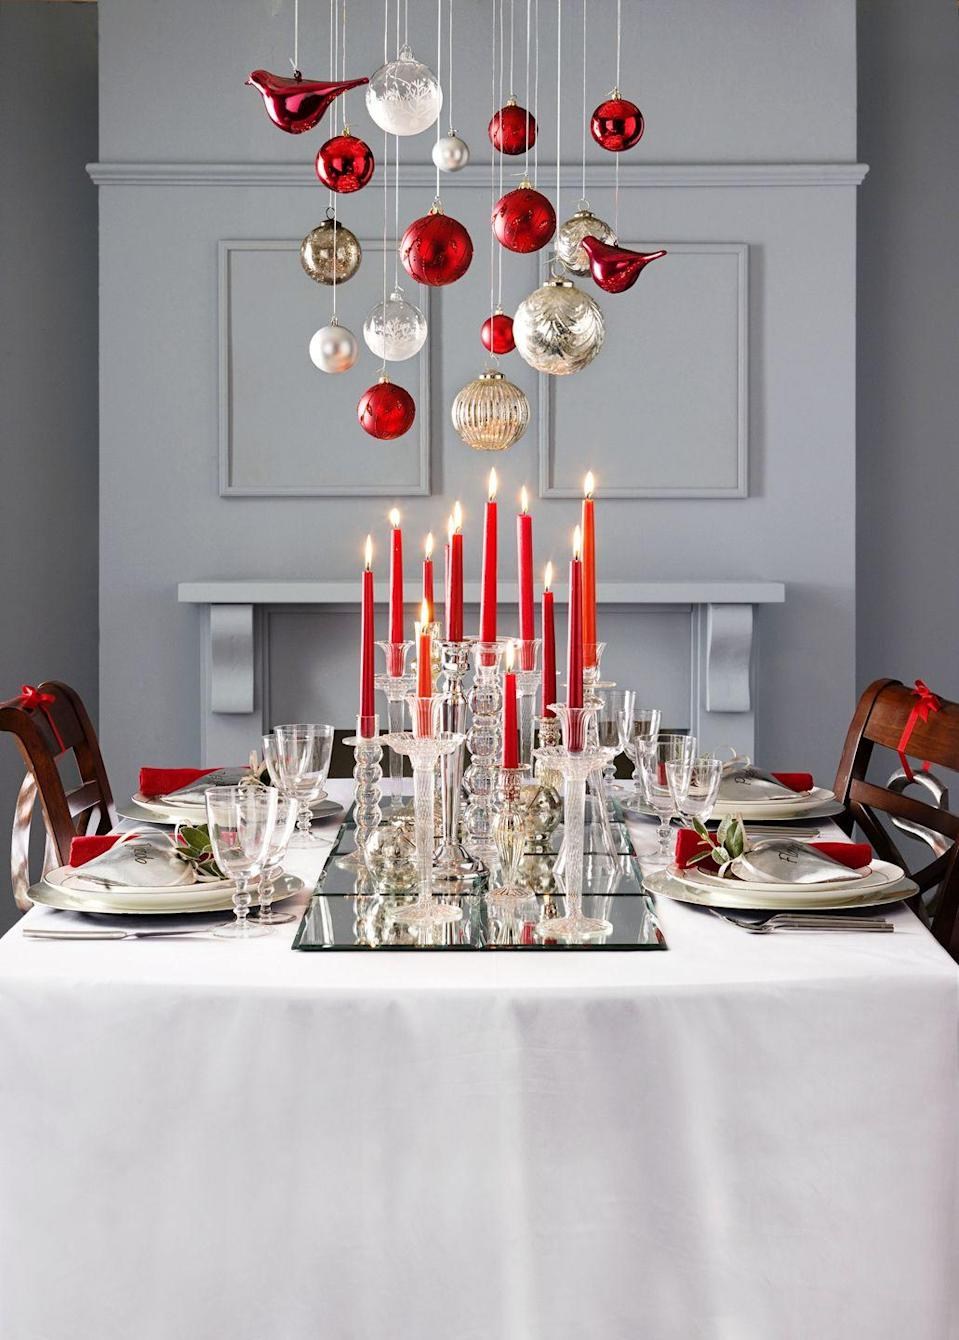 """<p>Along with suspending ornaments above your dining table, illuminate your space with an arrangement of tall red candlesticks. It's an easy way to give dinner guests a warm welcome and make your dining room more welcoming.</p><p><a class=""""link rapid-noclick-resp"""" href=""""https://www.amazon.com/CandleNScent-Taper-Candles-Tapered-Candlesticks/dp/B07VYV6FNY/ref=asc_df_B07VYV6FNY/?tag=syn-yahoo-20&ascsubtag=%5Bartid%7C10055.g.2196%5Bsrc%7Cyahoo-us"""" rel=""""nofollow noopener"""" target=""""_blank"""" data-ylk=""""slk:SHOP RED CANDLESTICKS"""">SHOP RED CANDLESTICKS</a></p>"""